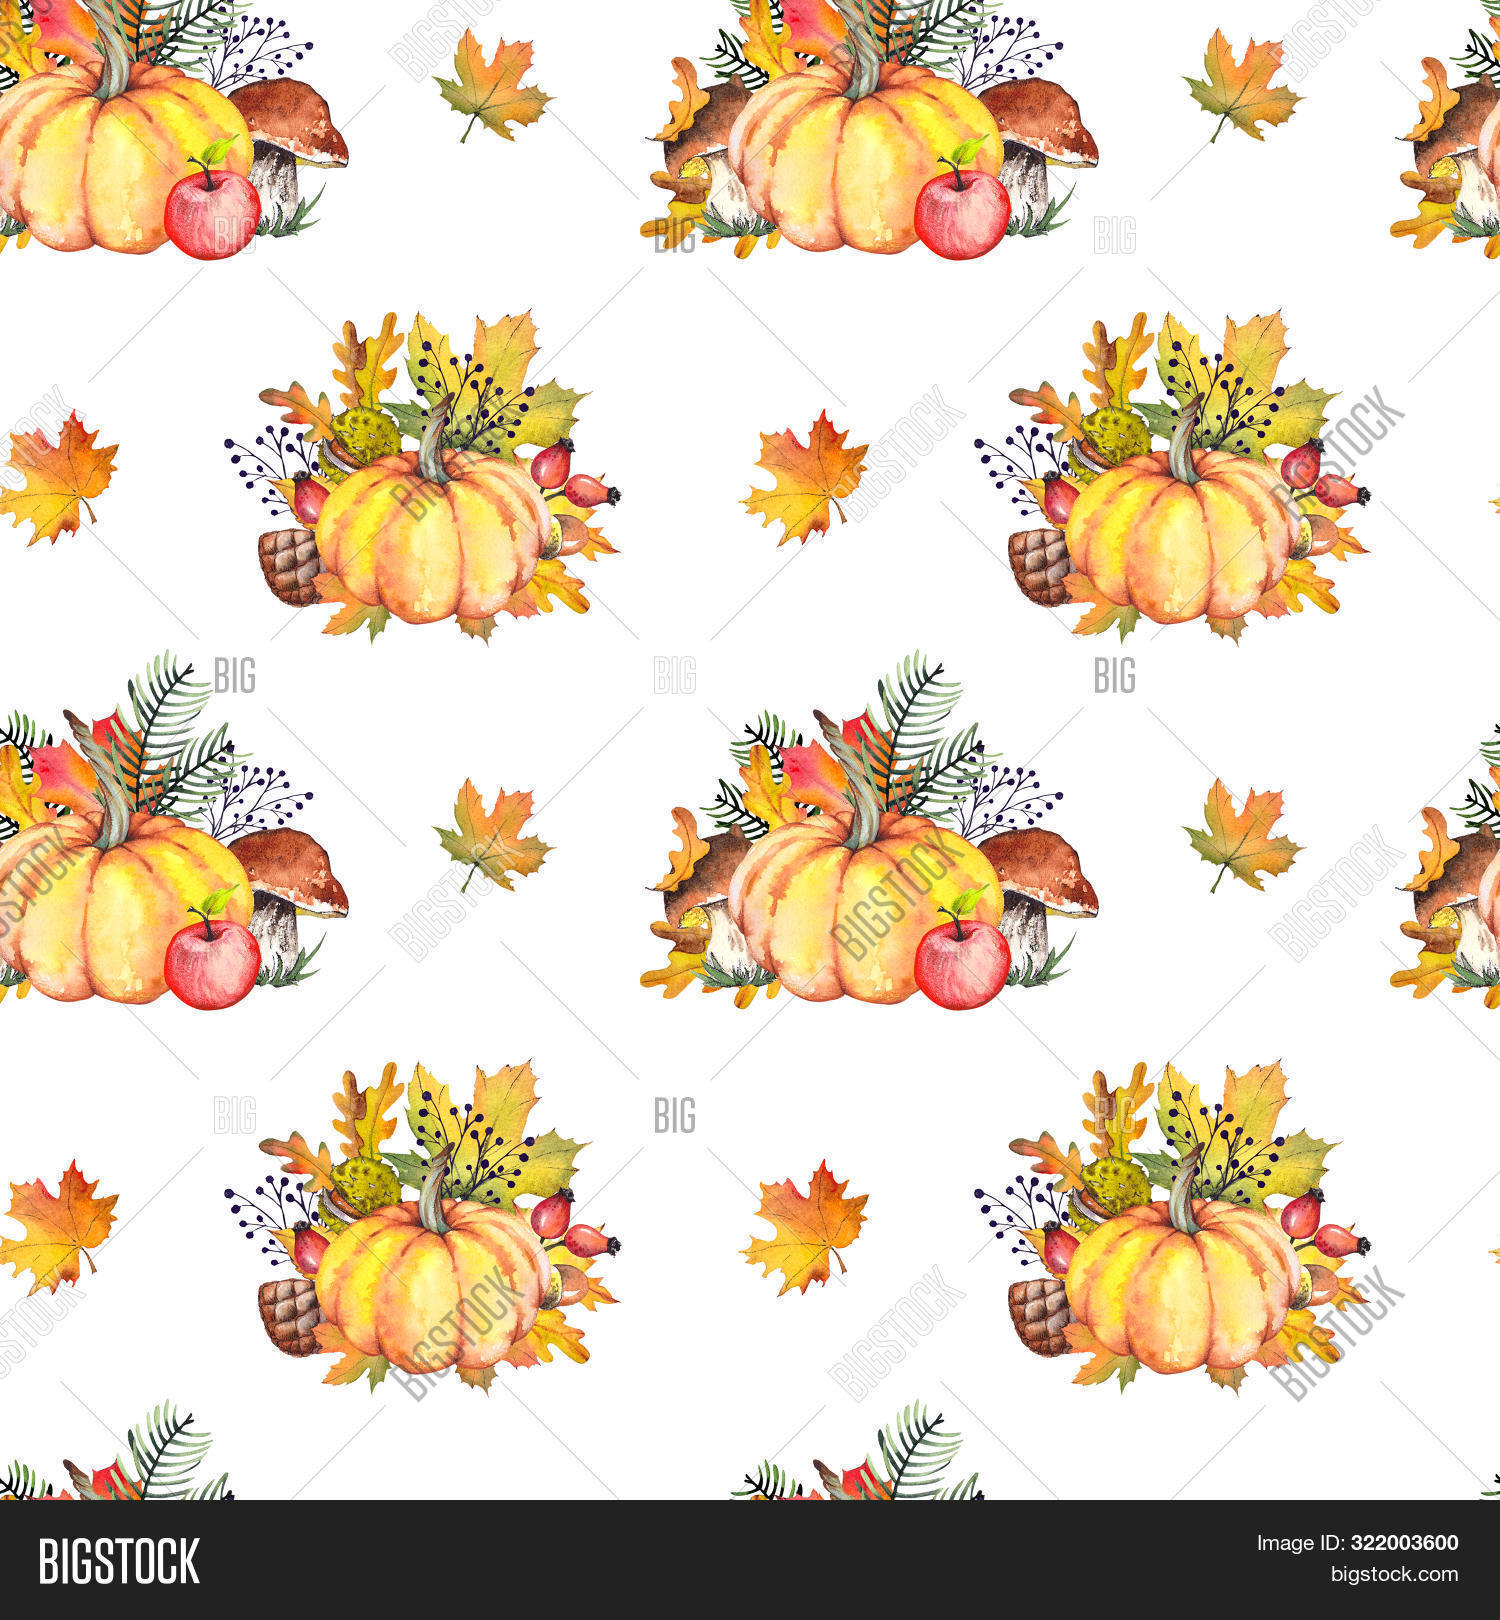 Seamless pattern with orange pumpkins over beautiful bright autumnal nature background. Autumn Thanksgiving day. Holiday autumn festival concept.